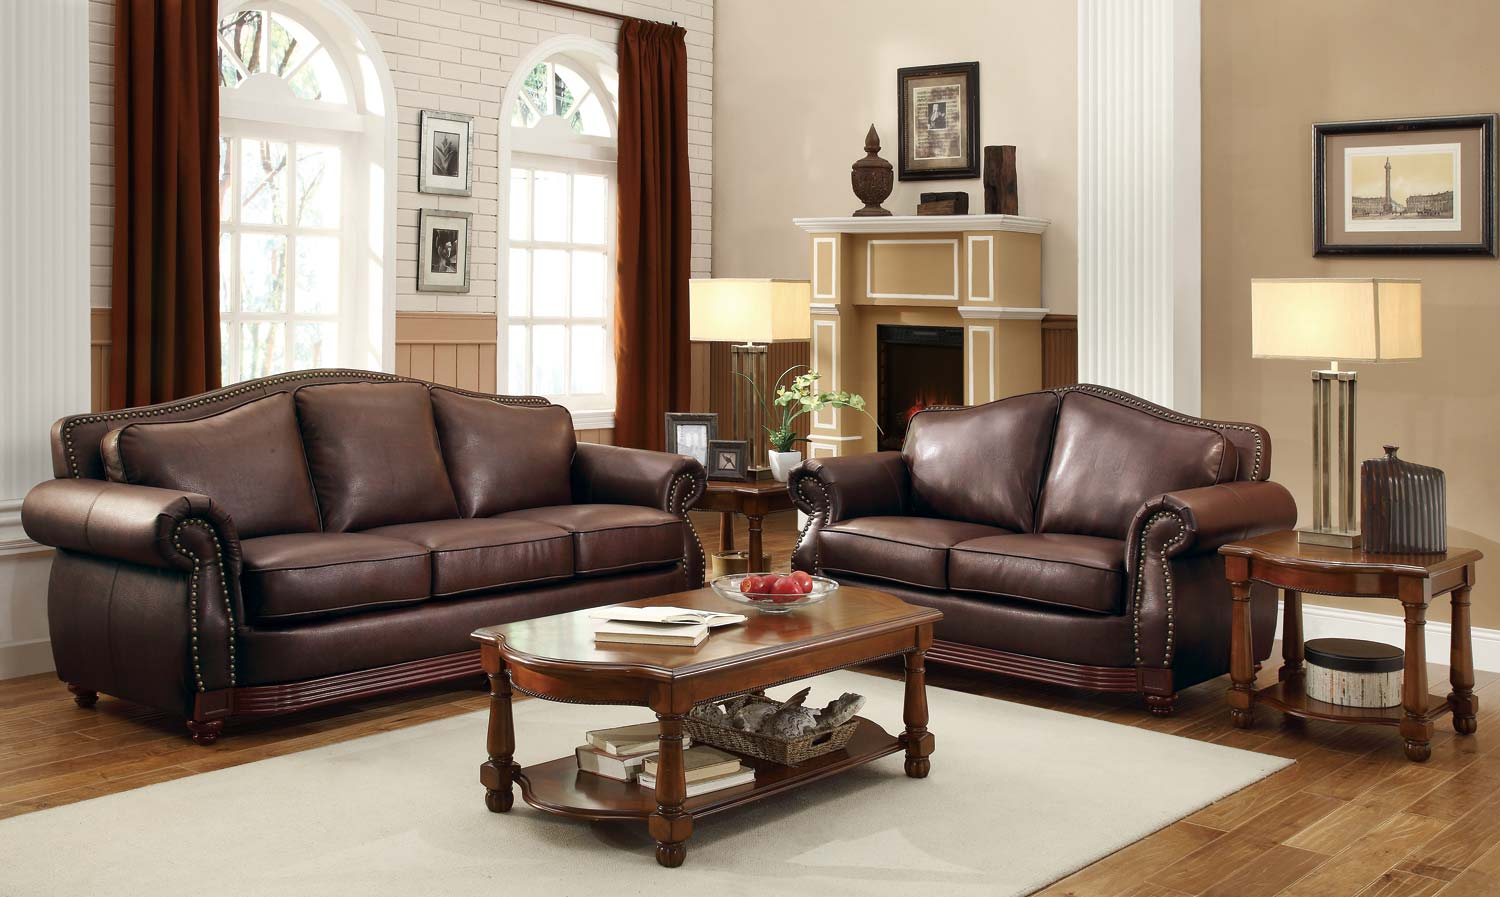 Homelegance midwood 2pc brown sofa loveseat set dallas Living room furniture dallas